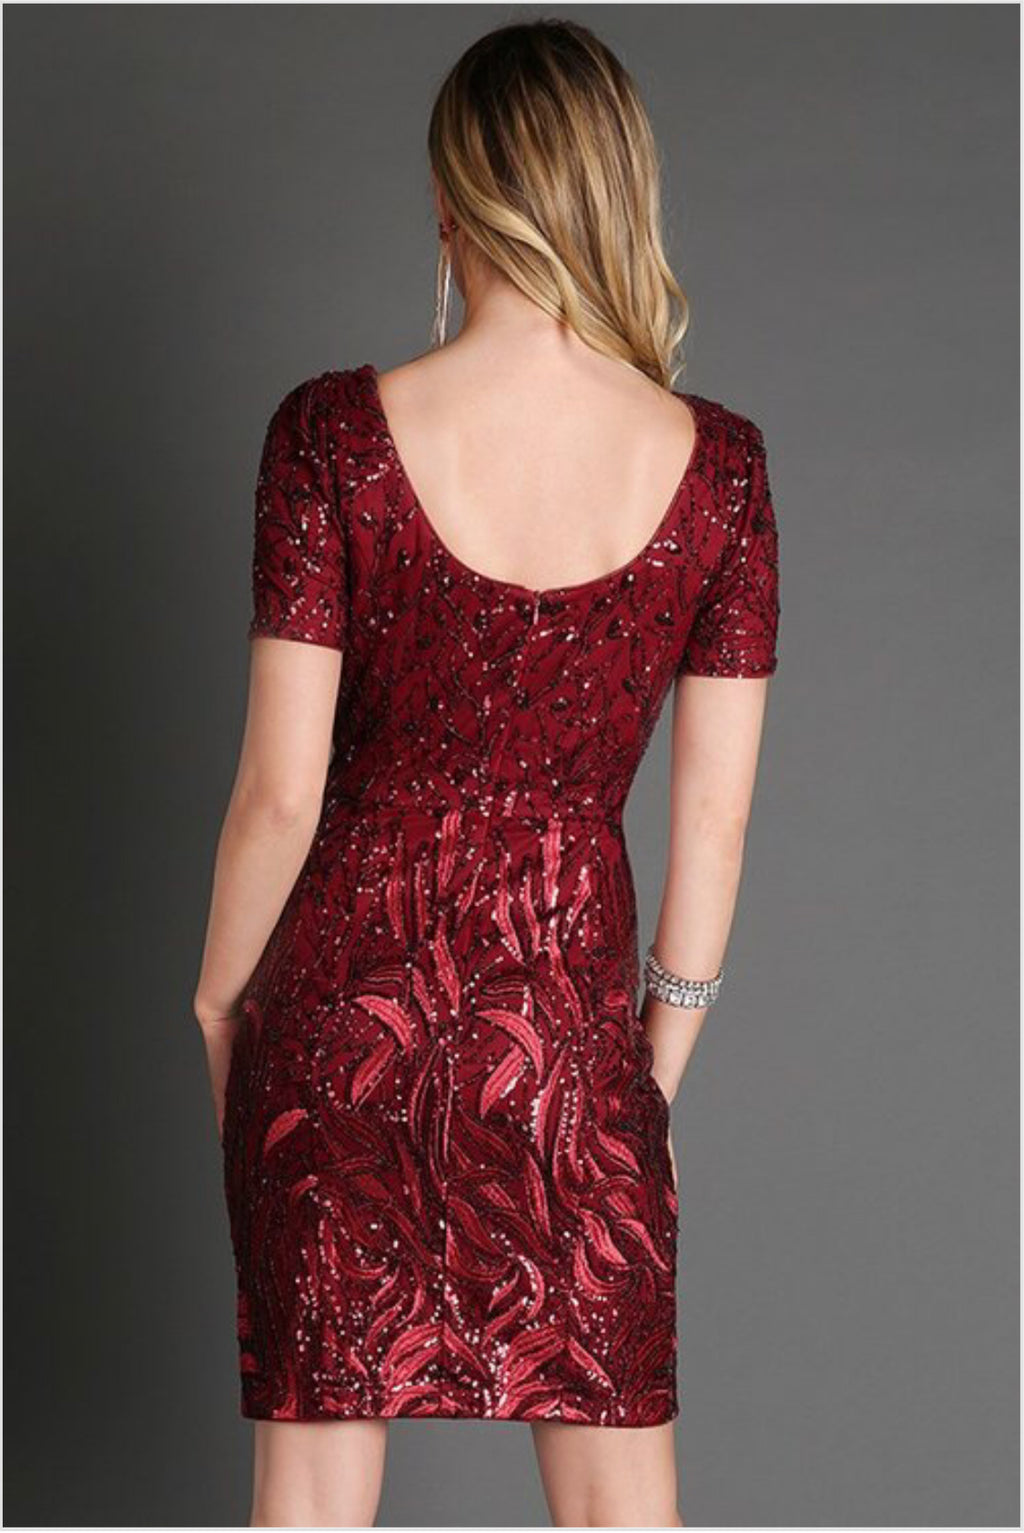 burgandy dress